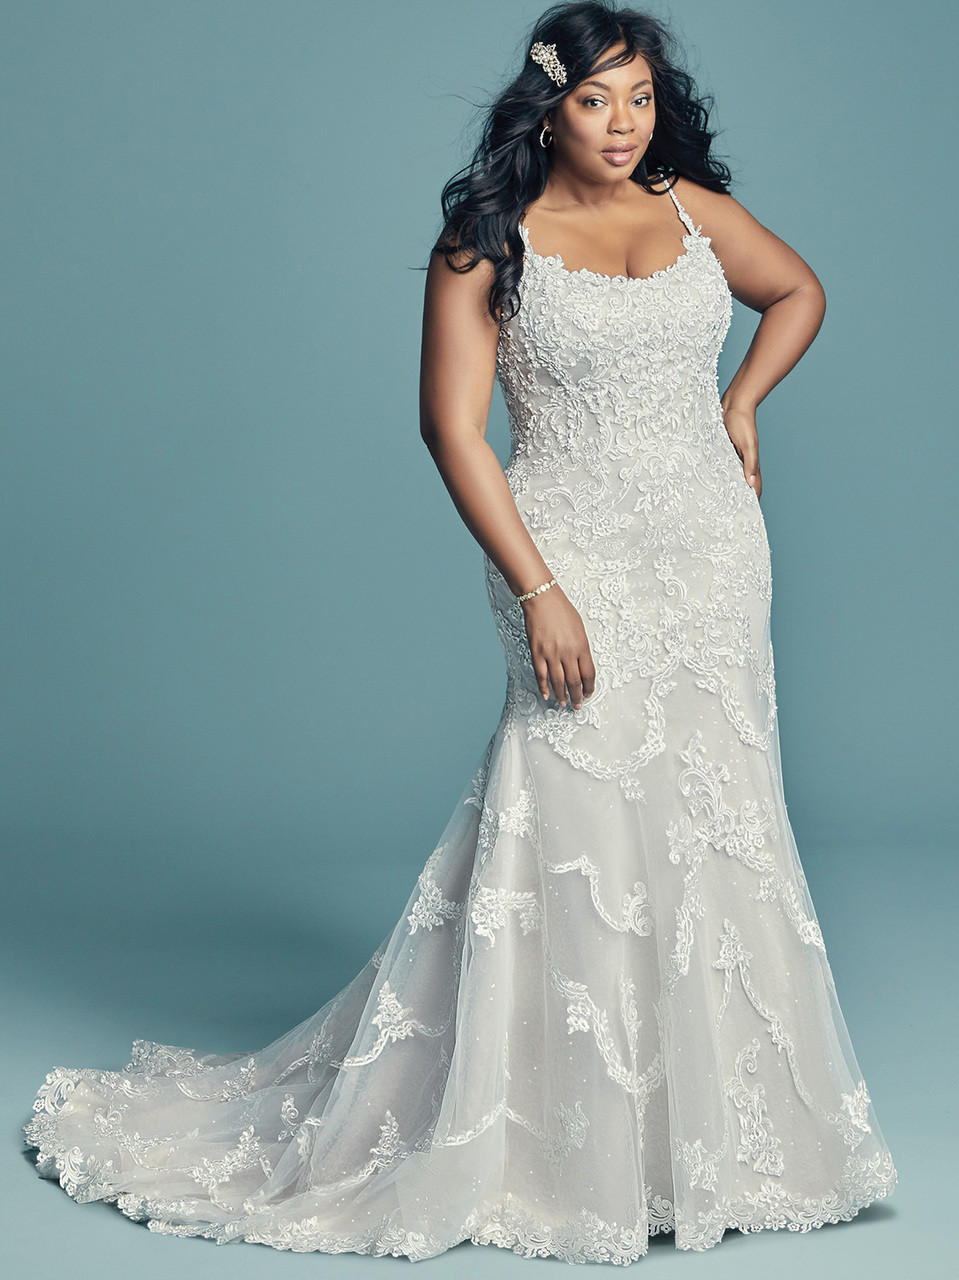 Maggie Sottero Wedding Gown Riley Marie Dimitra Designs